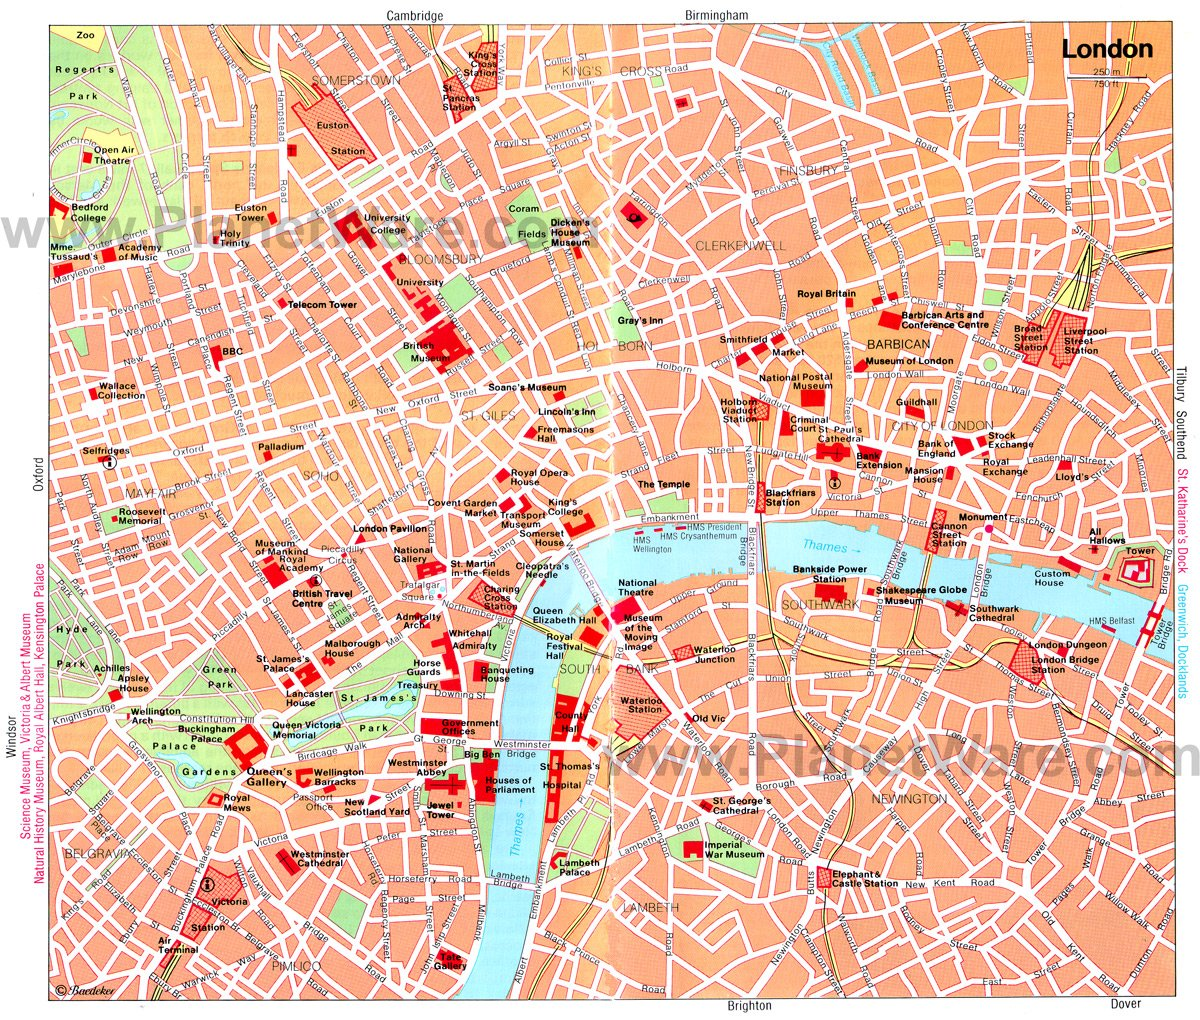 17 TopRated Tourist Attractions in London – Printable Tourist Map Of London Attractions